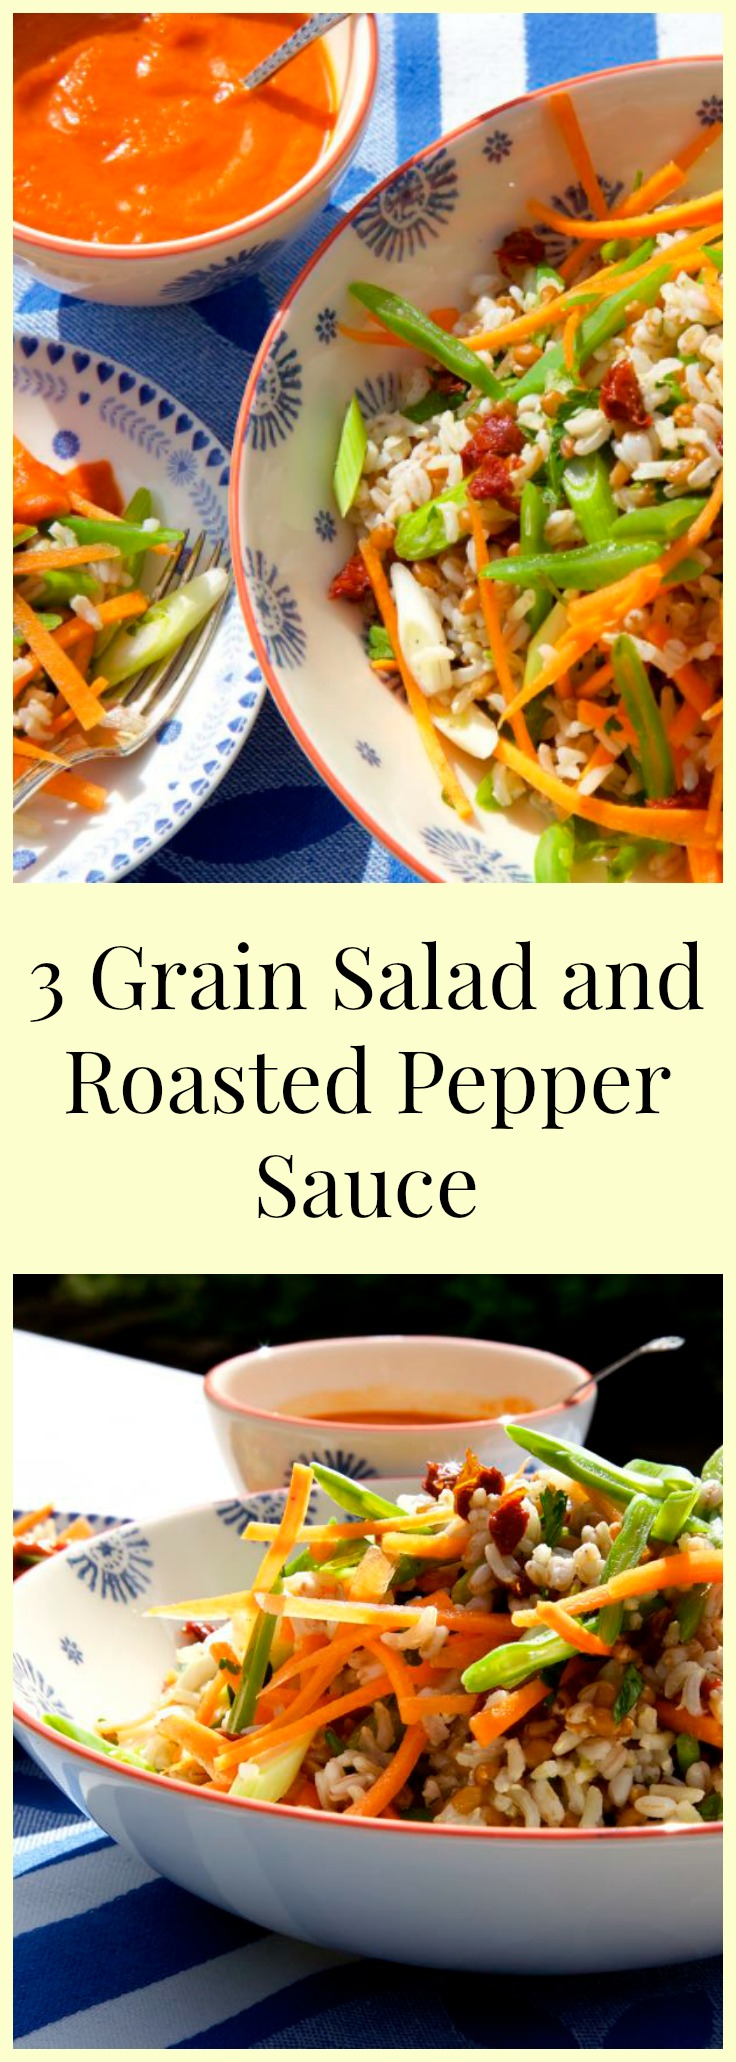 A delciously summery three grain salad with crunchy vegetables, garlic oil dressing and a roasted red pepper sauce.